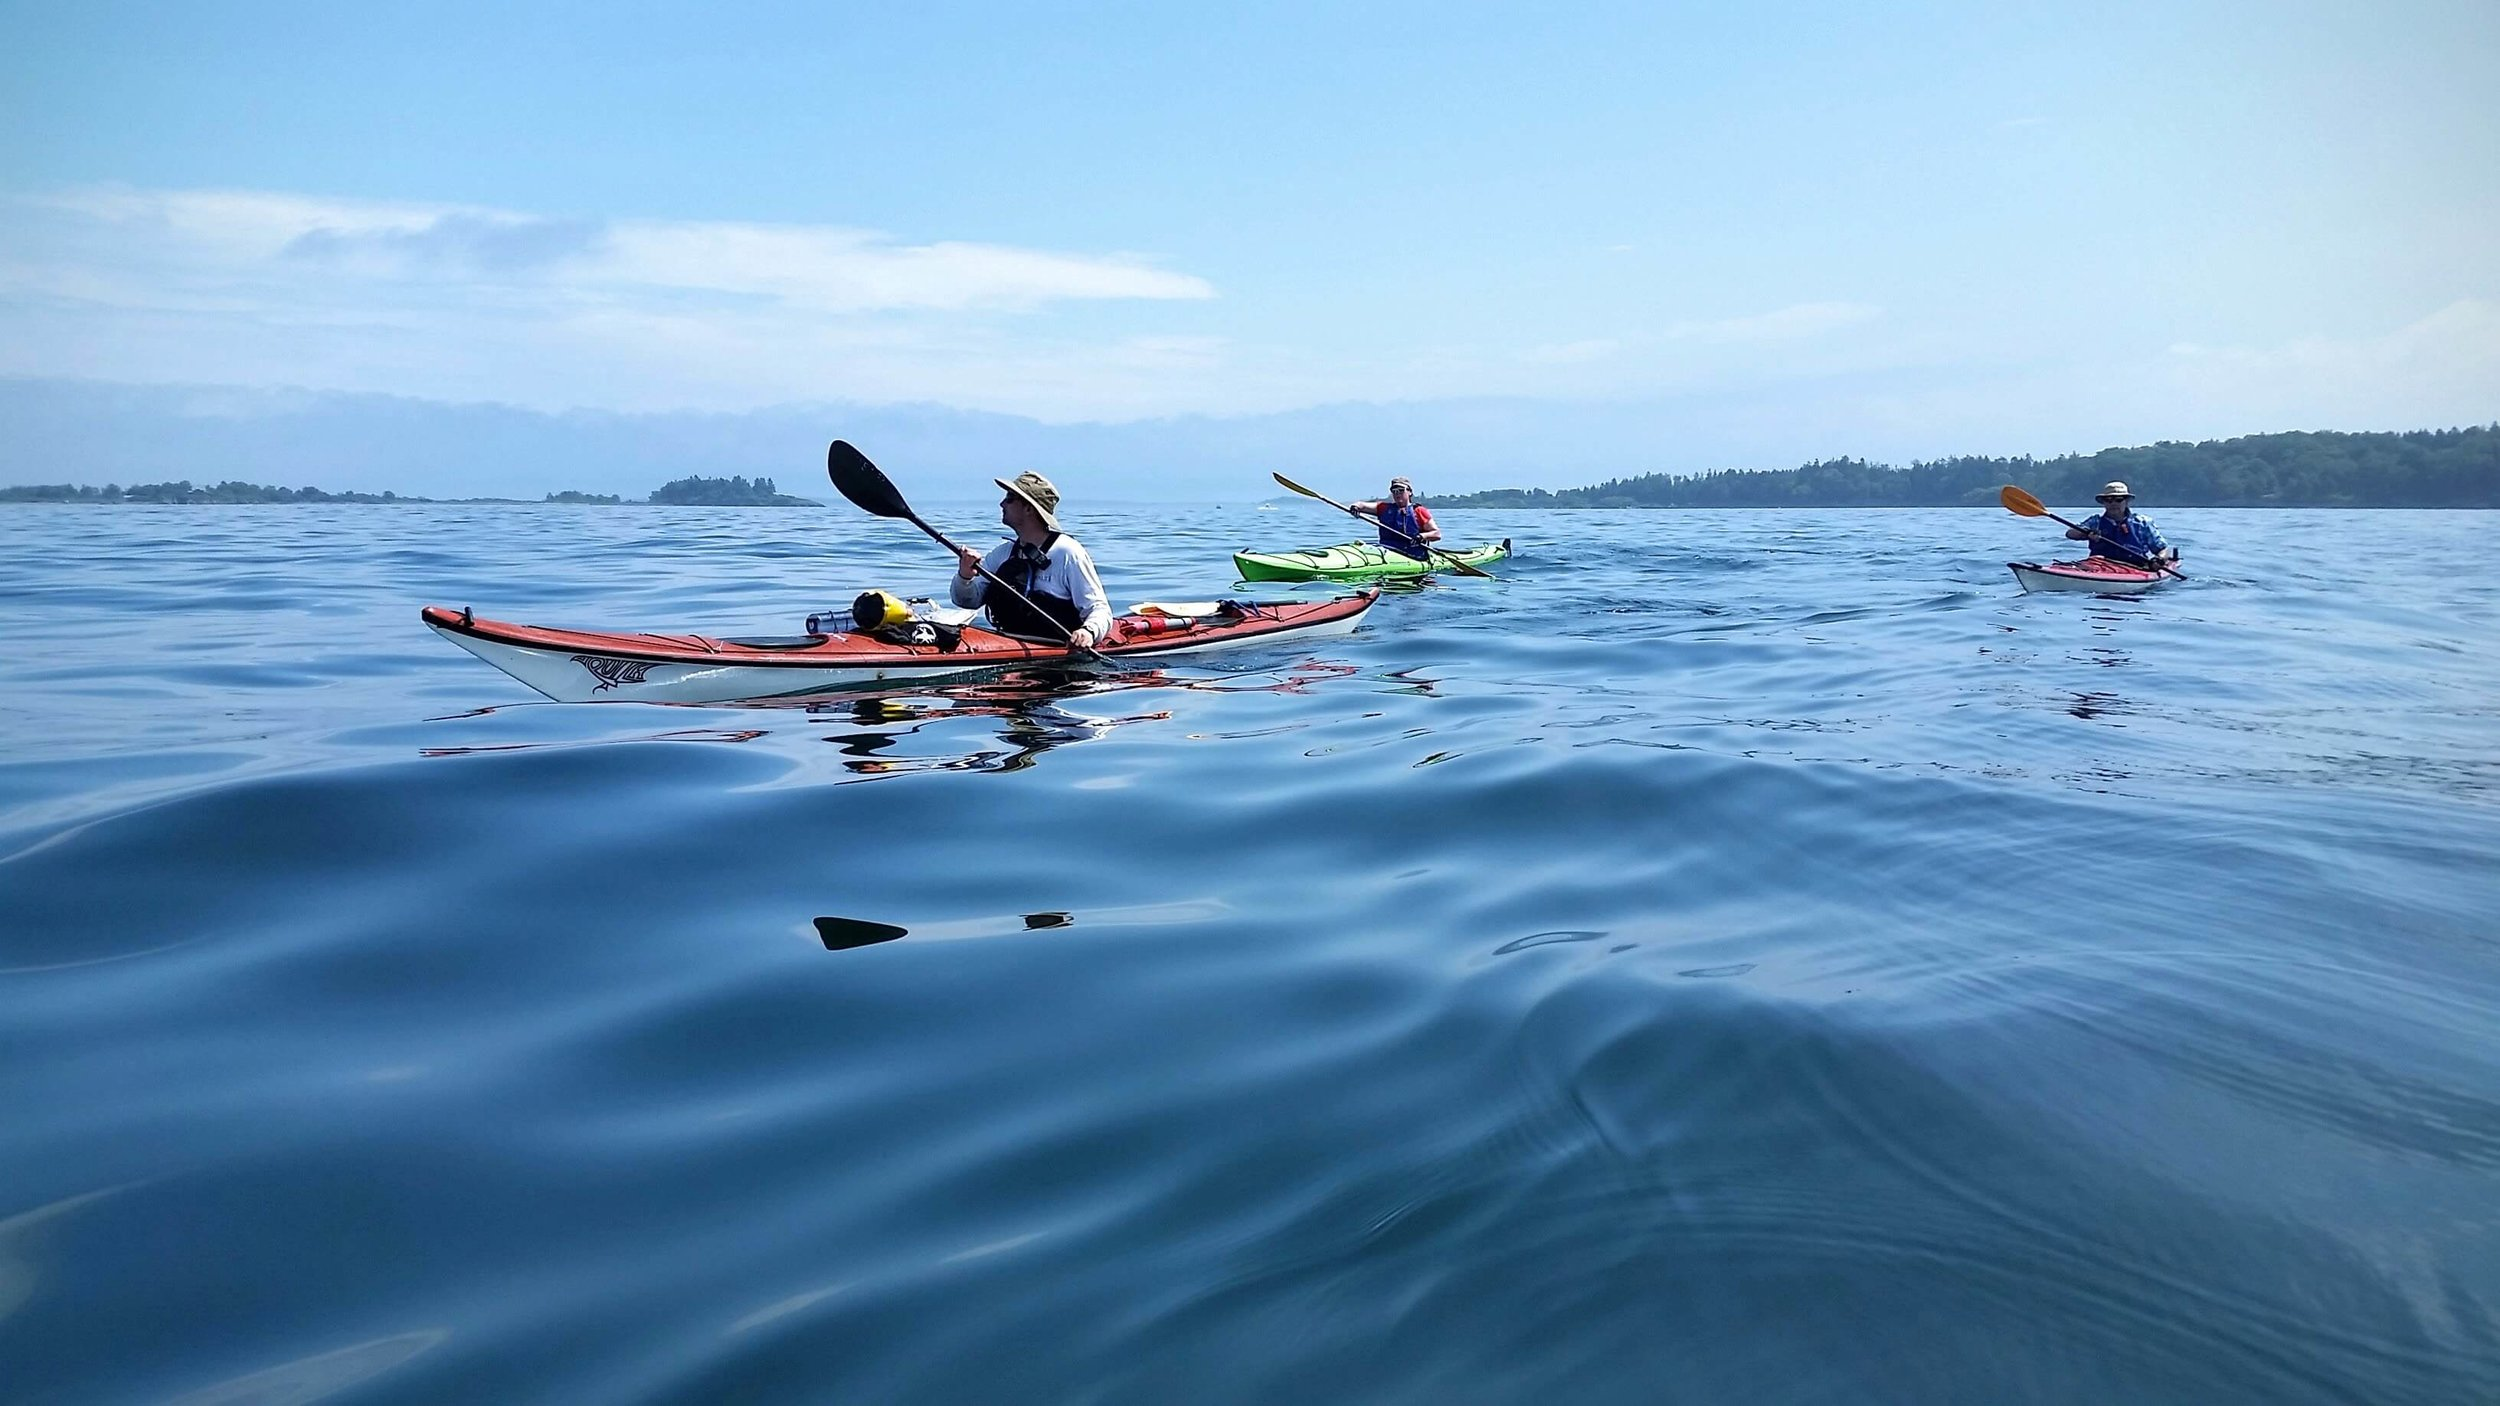 Crescent Beach Half-Day Kayak Tour - $65 per person, $55 for kids 12-1611:00 AM - 2:30 PMSaturdays or by request, Tours start July 1